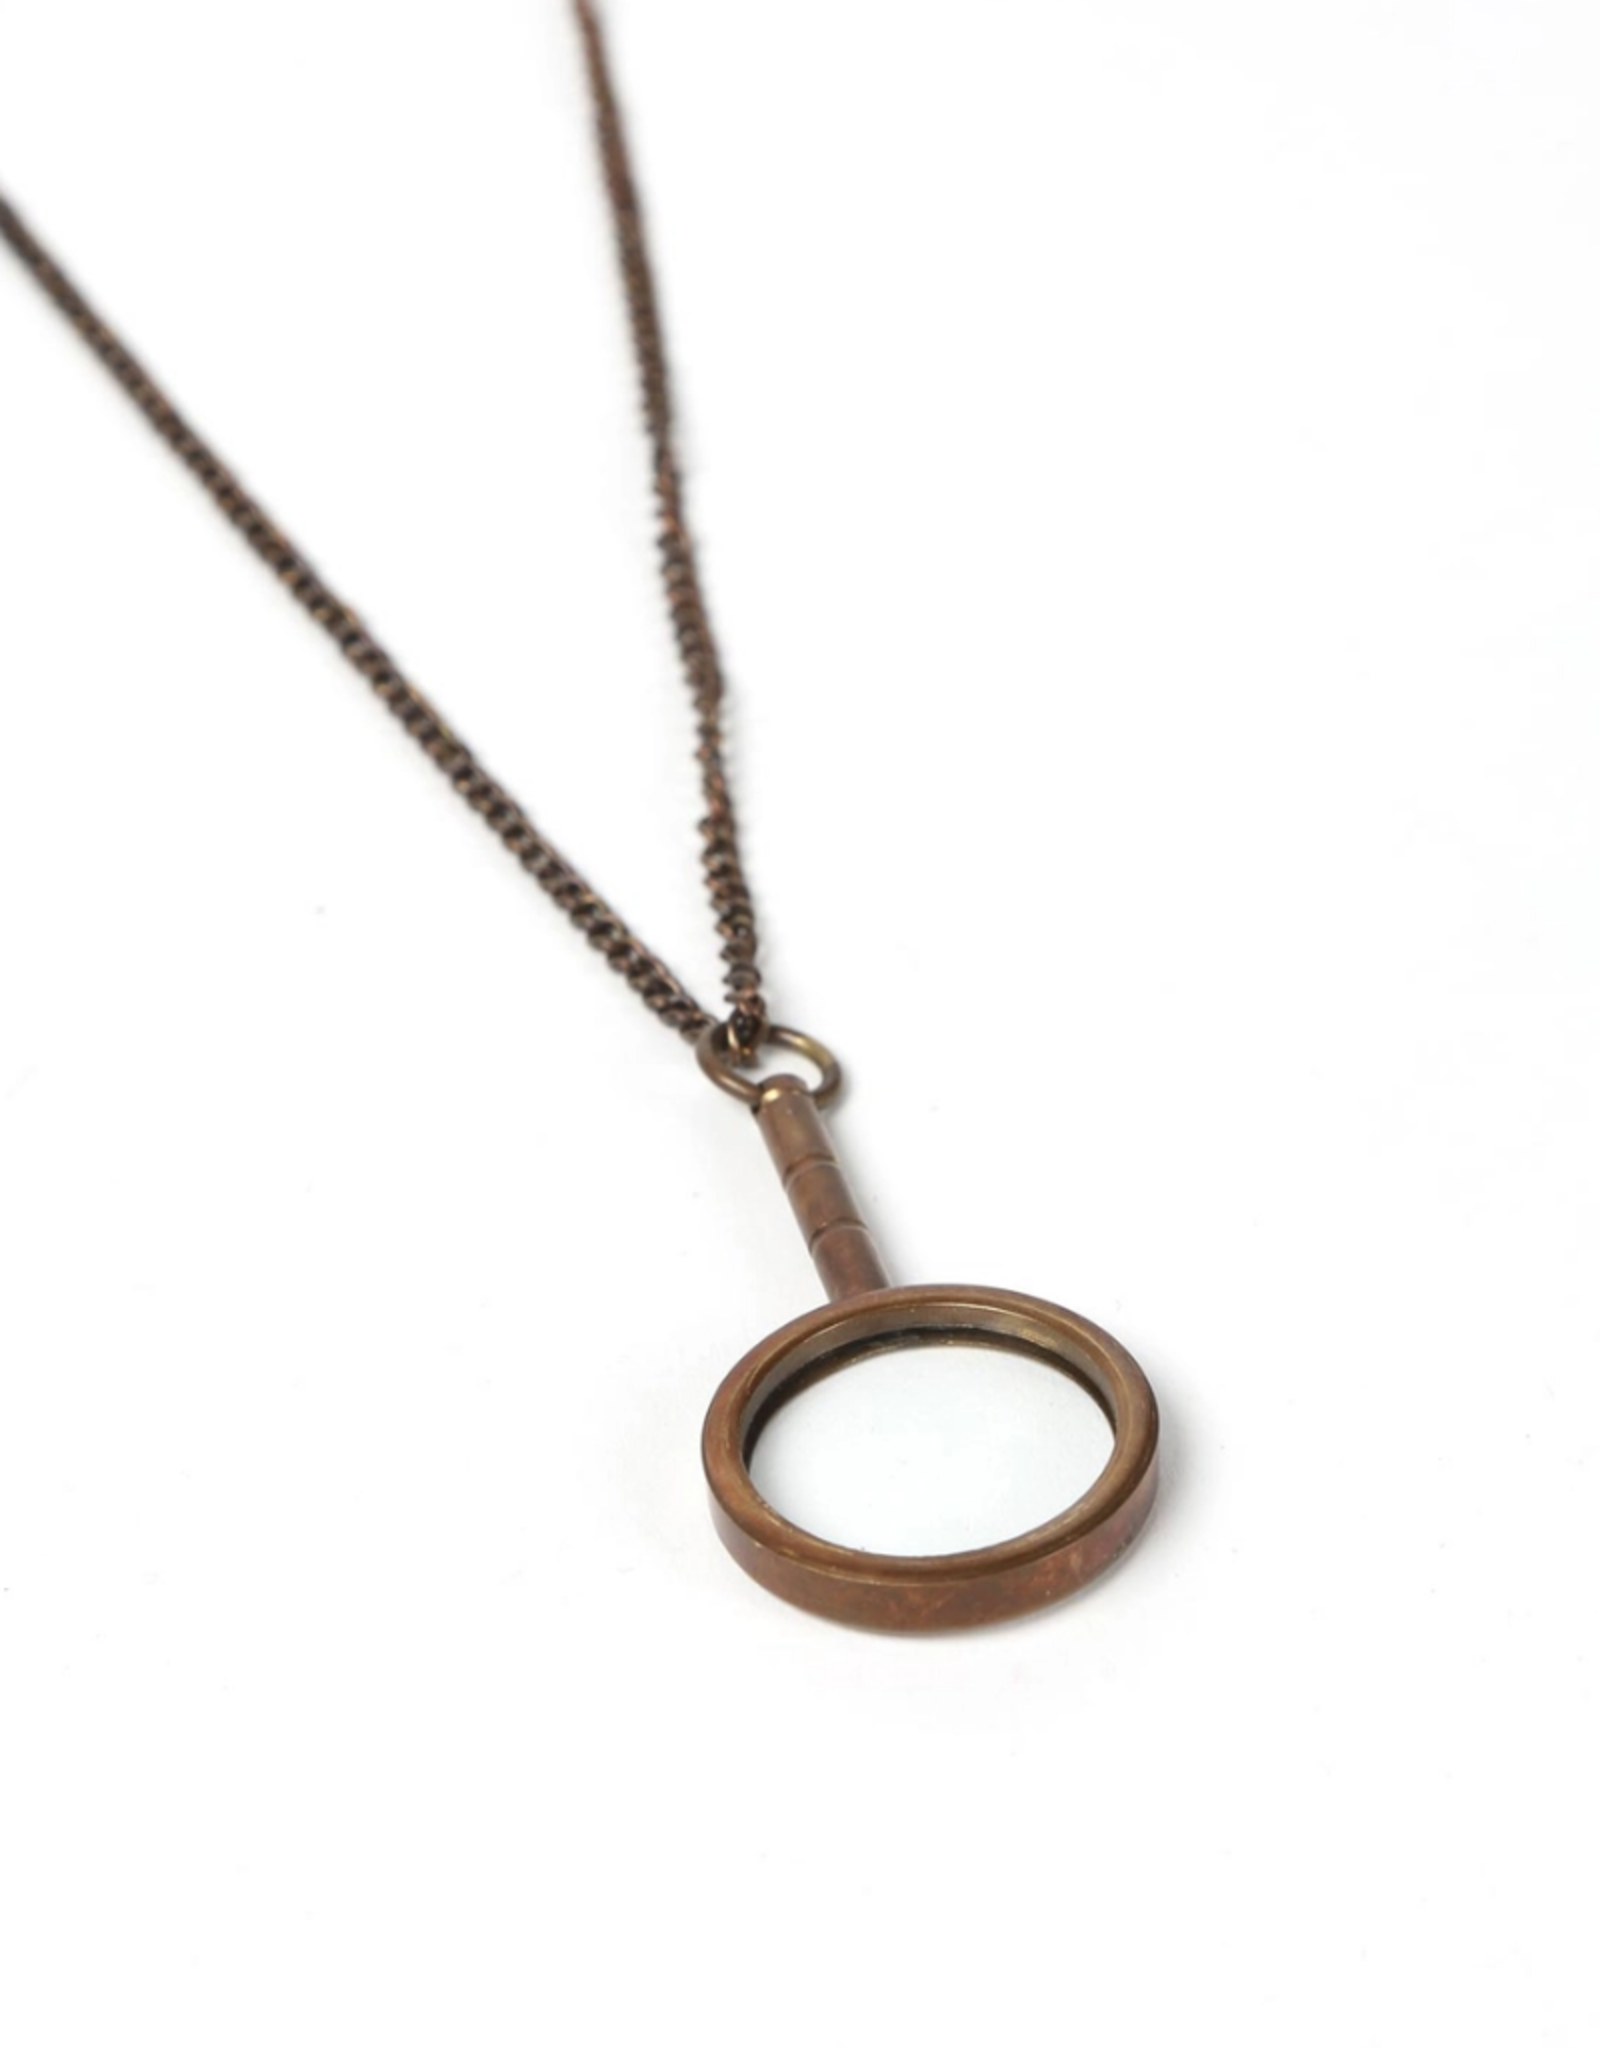 TTV USA Magnifying Glass Necklace